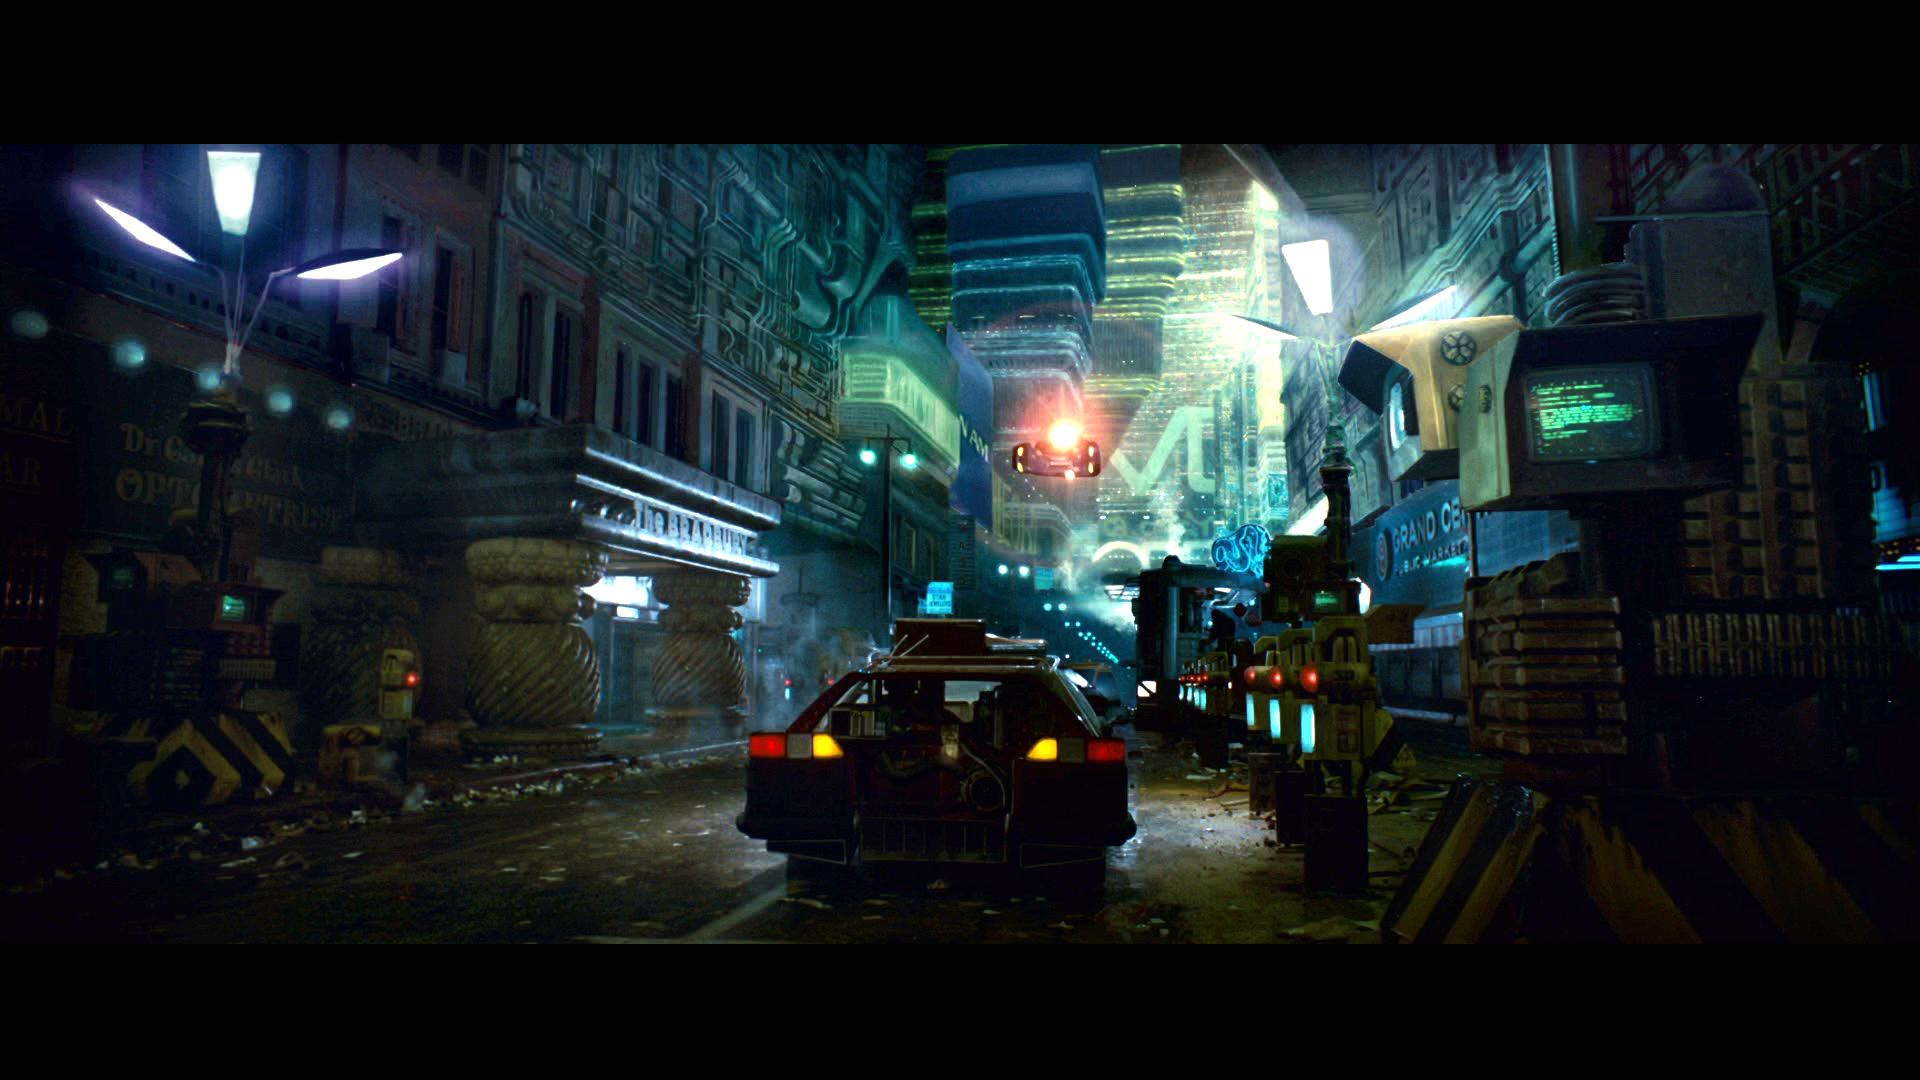 BLADE RUNNER drama sci Fi thriller action city fs wallpaper background 1920x1080